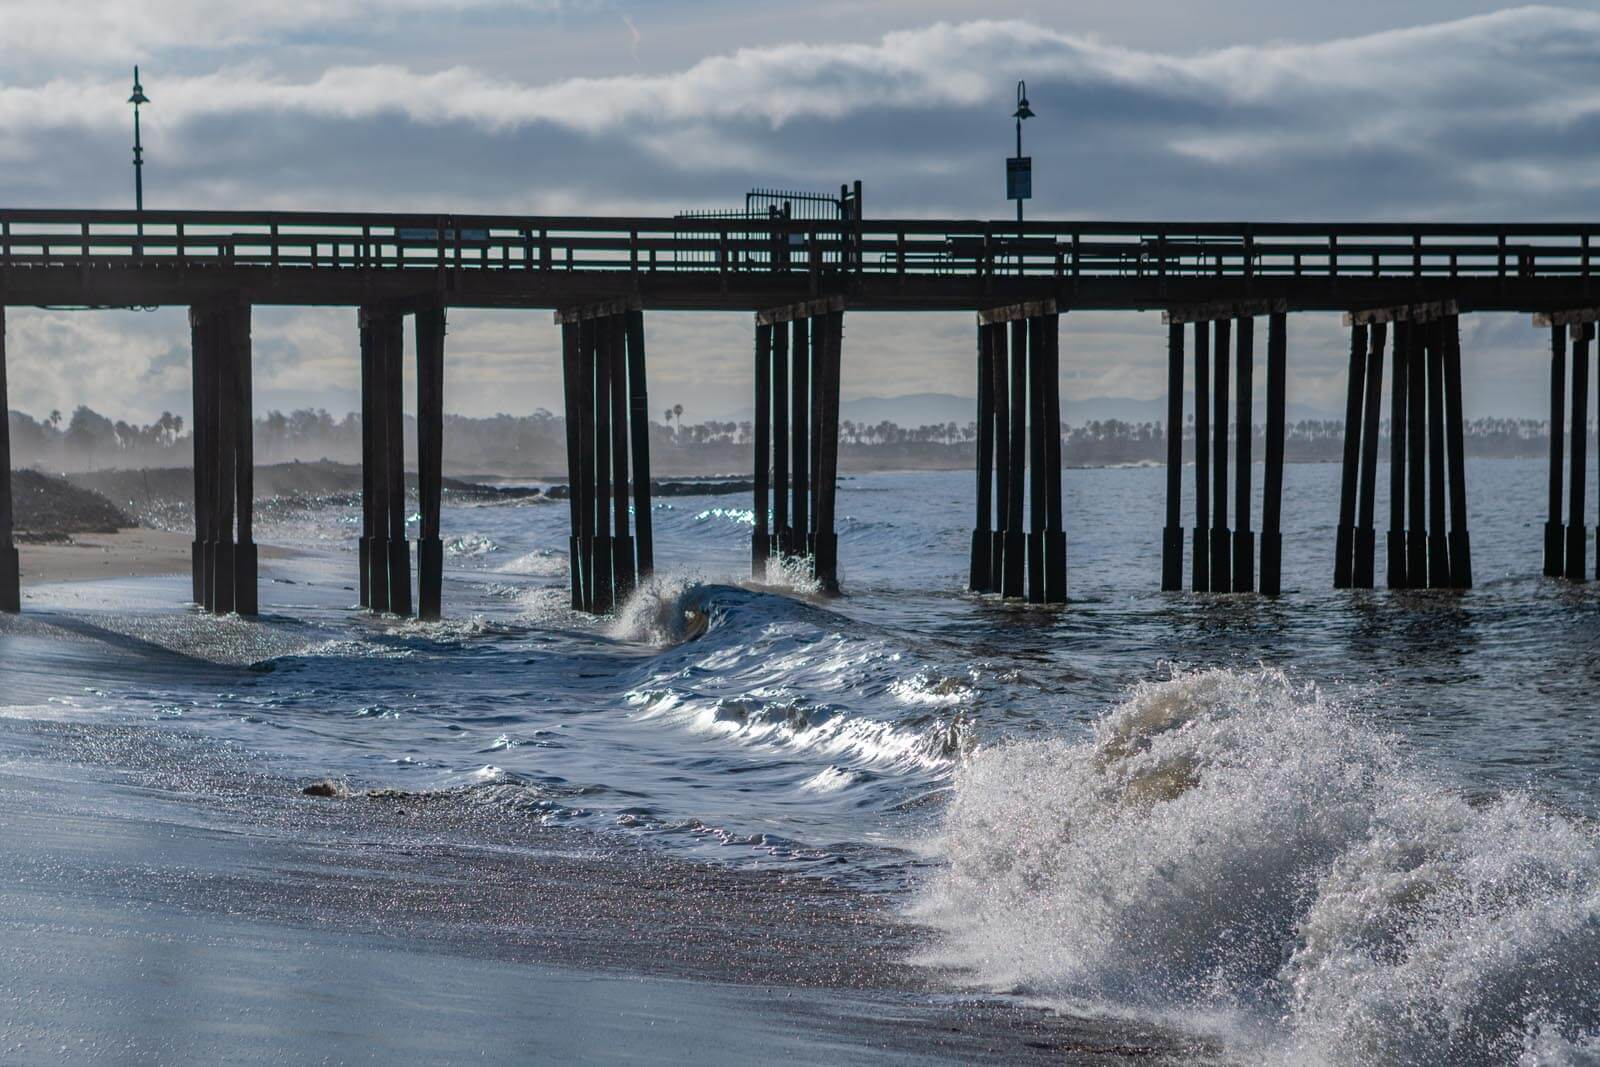 Waves at Ventura Pier in Ventura California